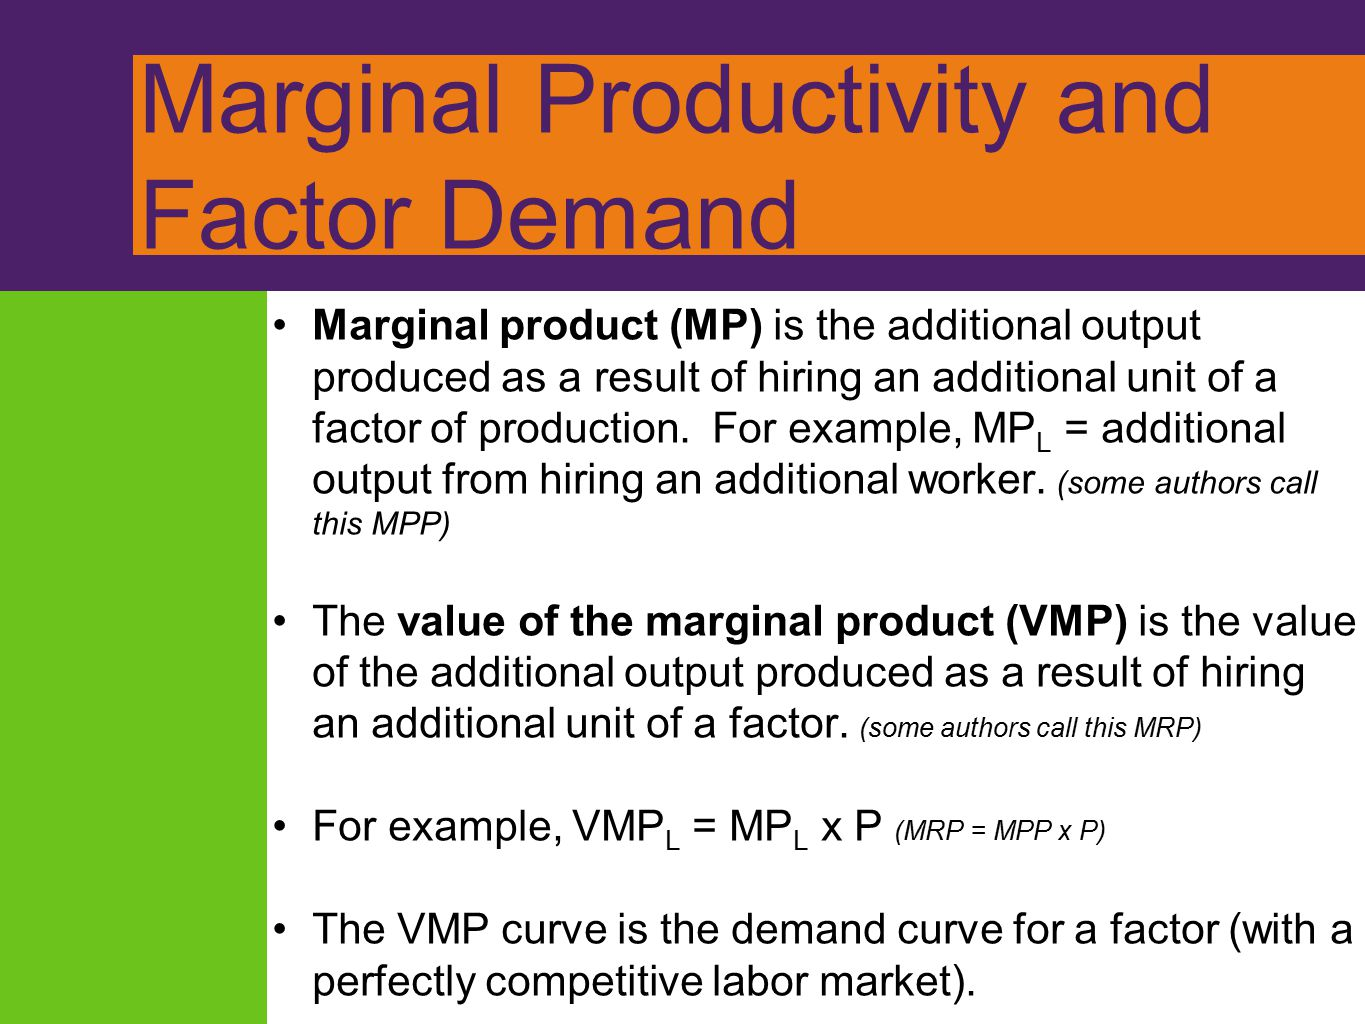 Marginal Productivity and Factor Demand